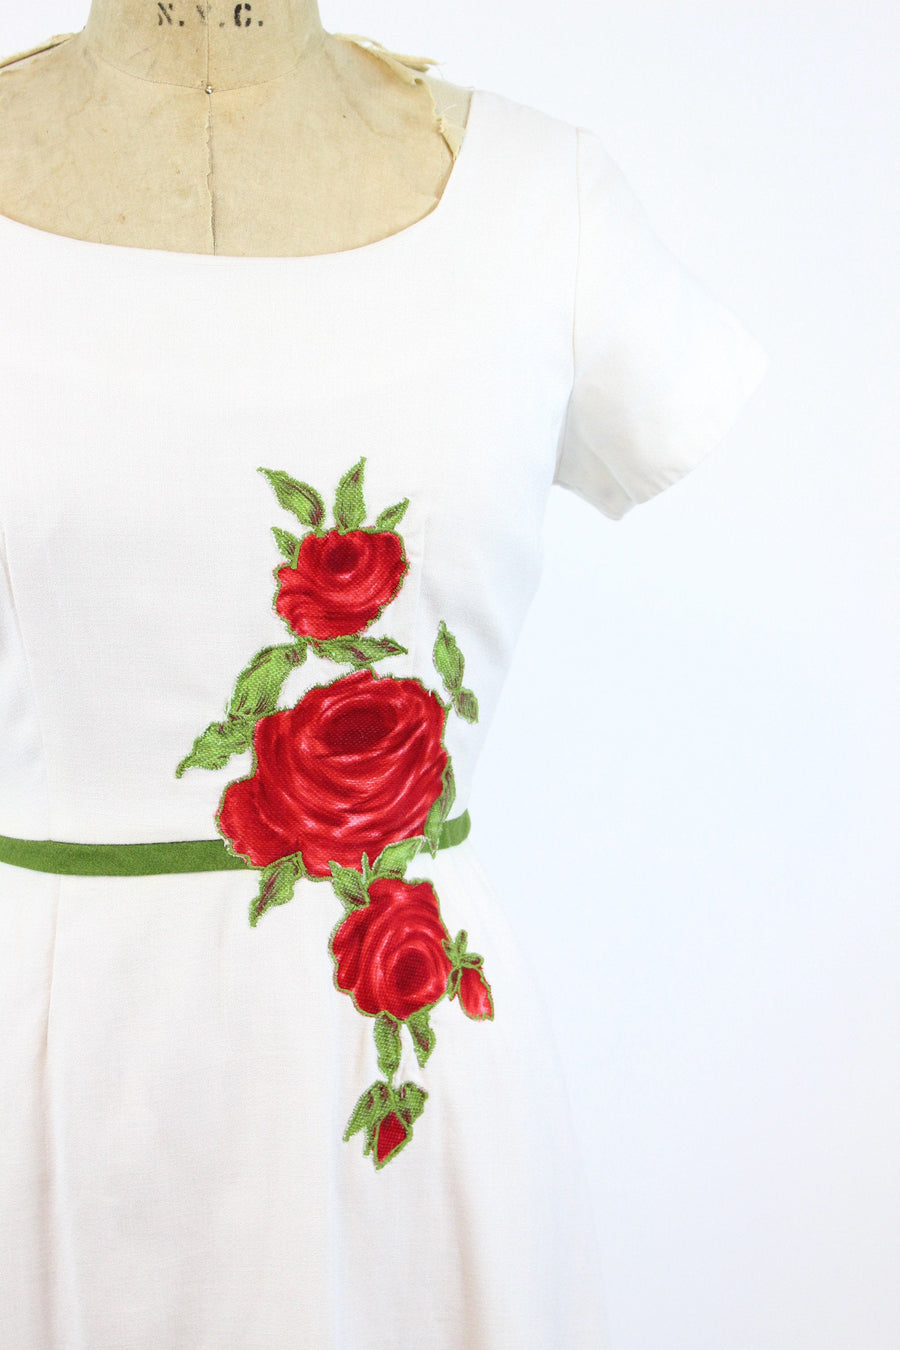 1950s cover girl of miami rose applique dress medium | vintage cotton dress | new in